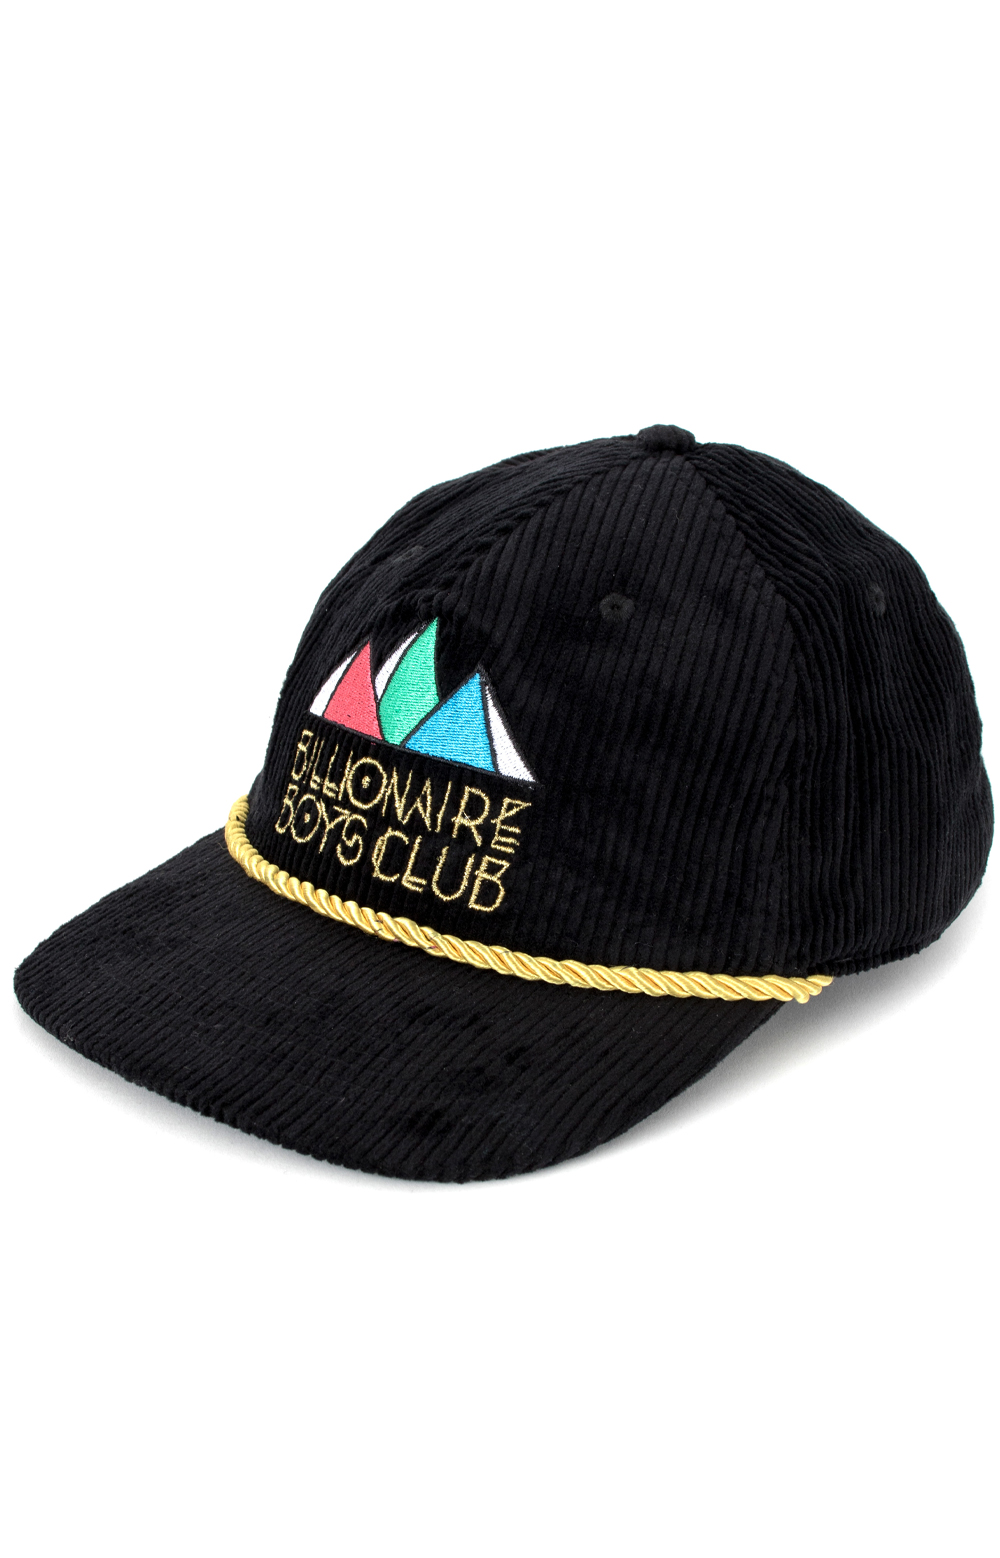 BB Pyramids Snap-Back Hat - Black. Loading... Home · Brands · Billionaire  Boys Club ... e0a7dfebe94